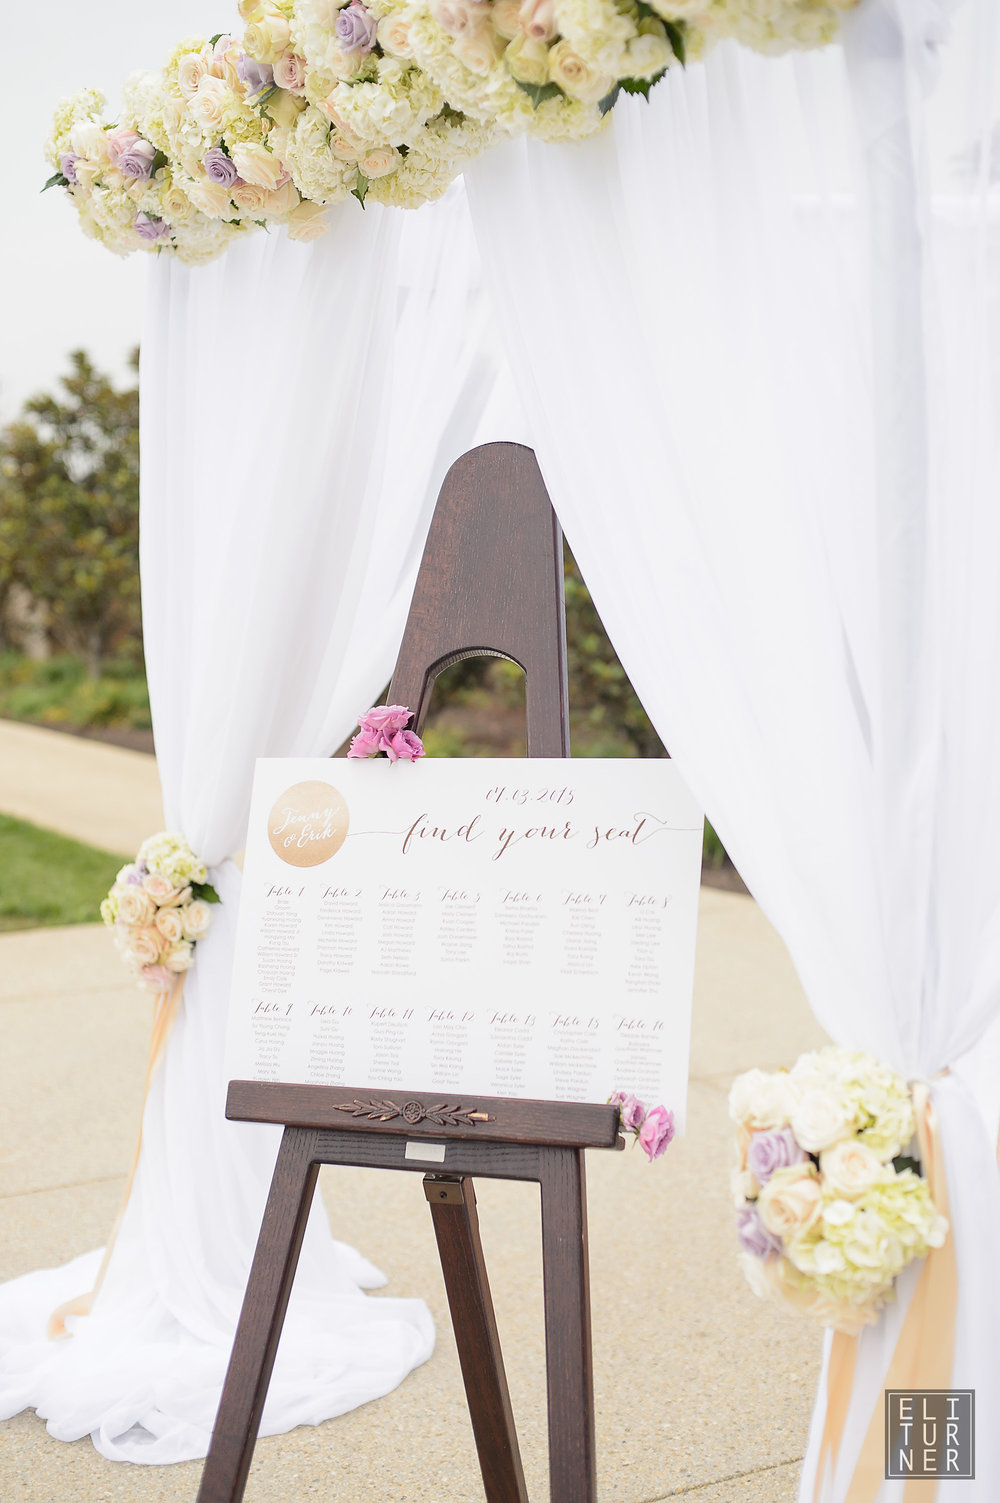 Rental arch with full drape and floral tiebacks, photography by Eli Turner.